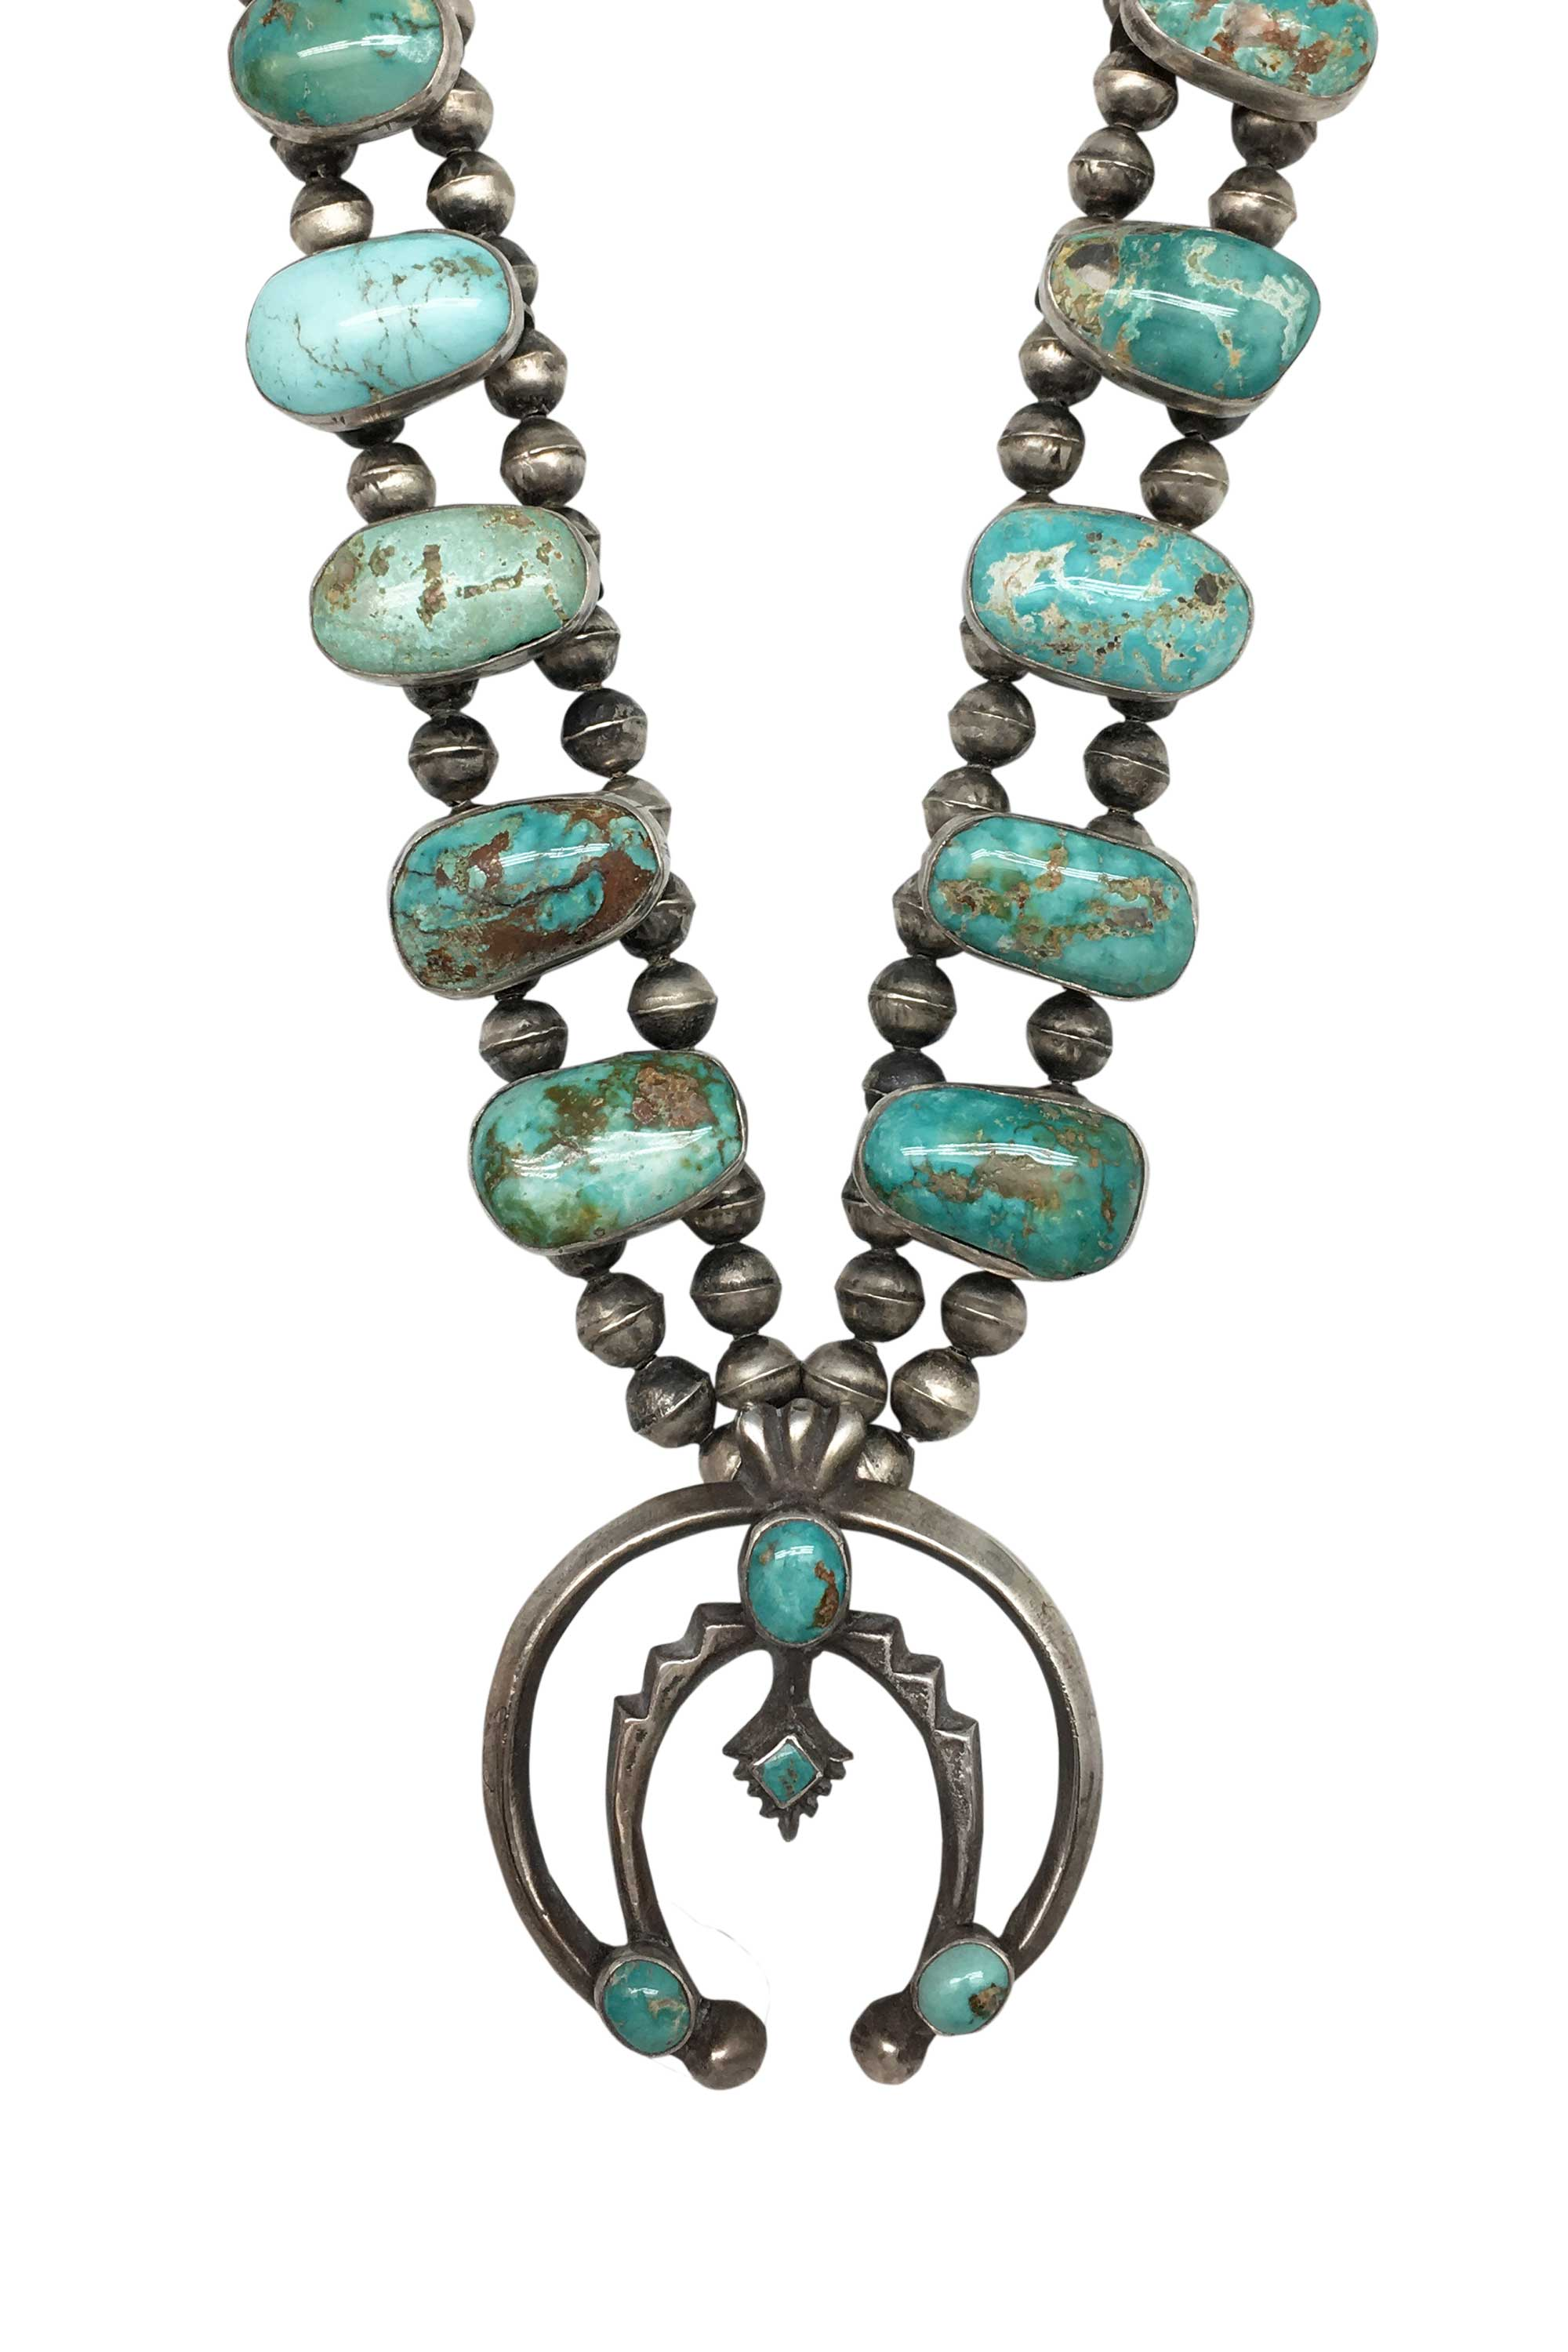 Necklace, Squash Blossom, Turquoise, Vintage, Royston, 1960's